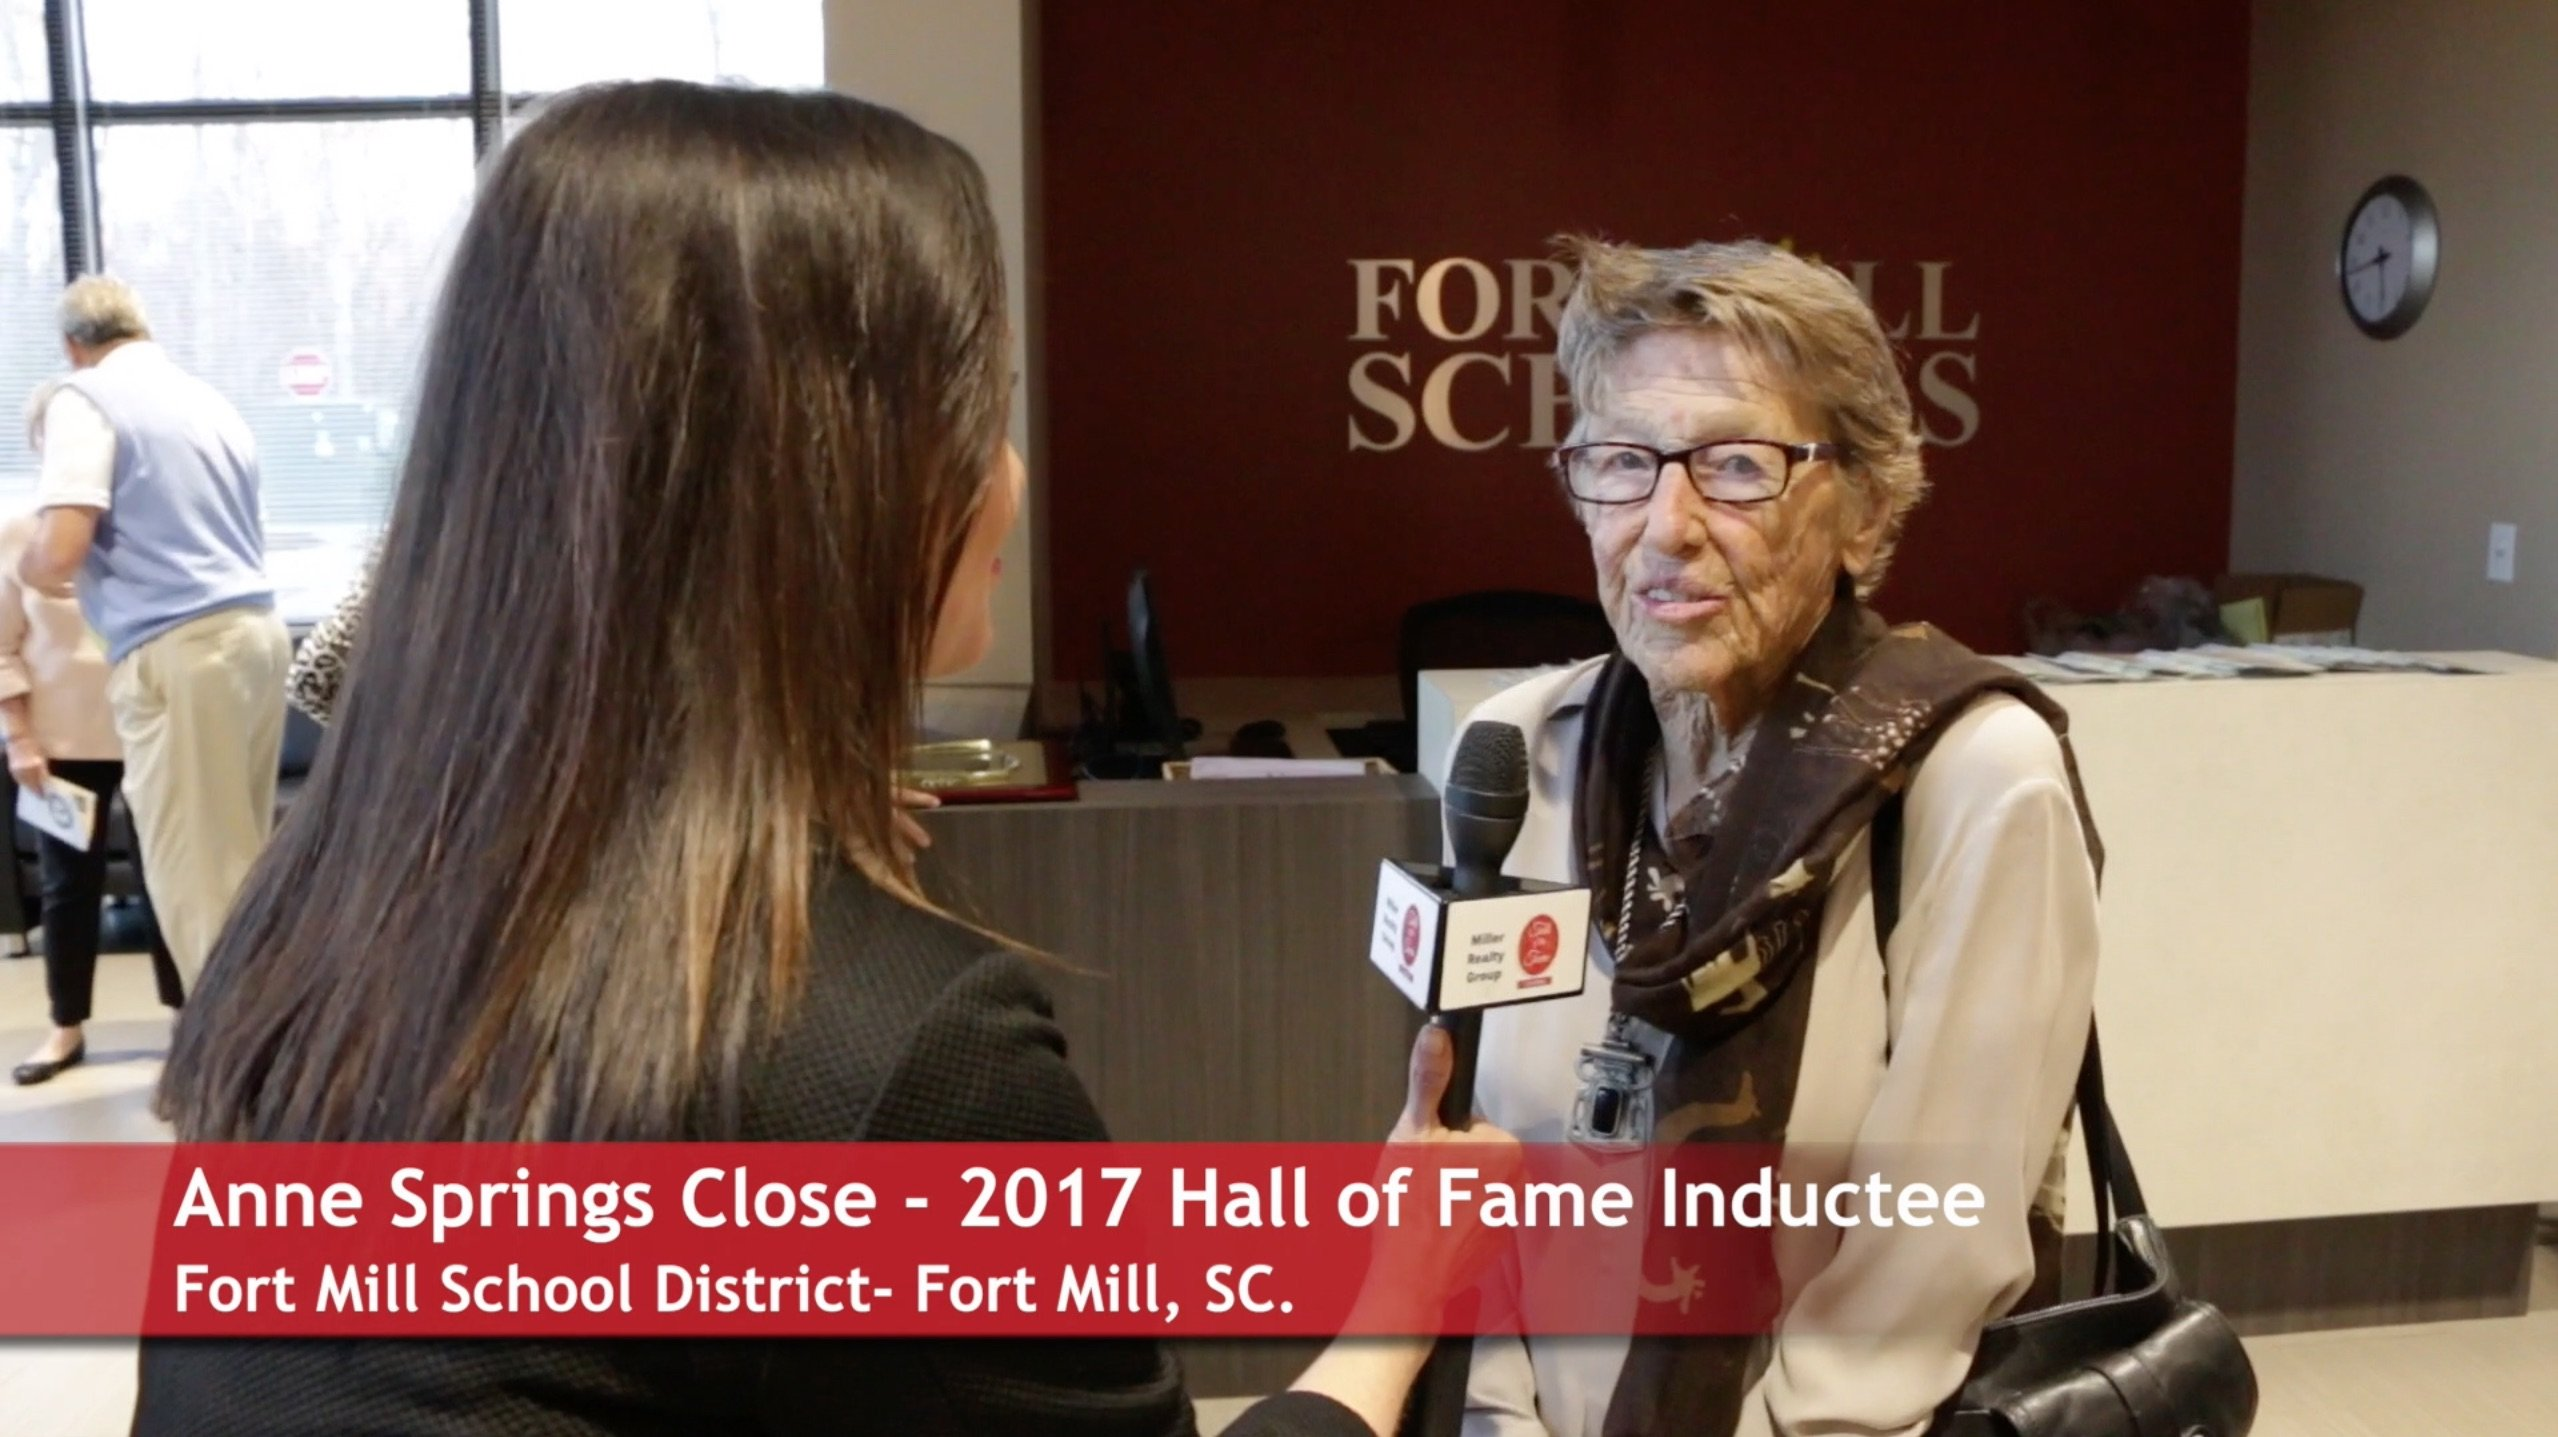 Fort Mill Schools Induct 5 People To THE 2017 Hall of Fame